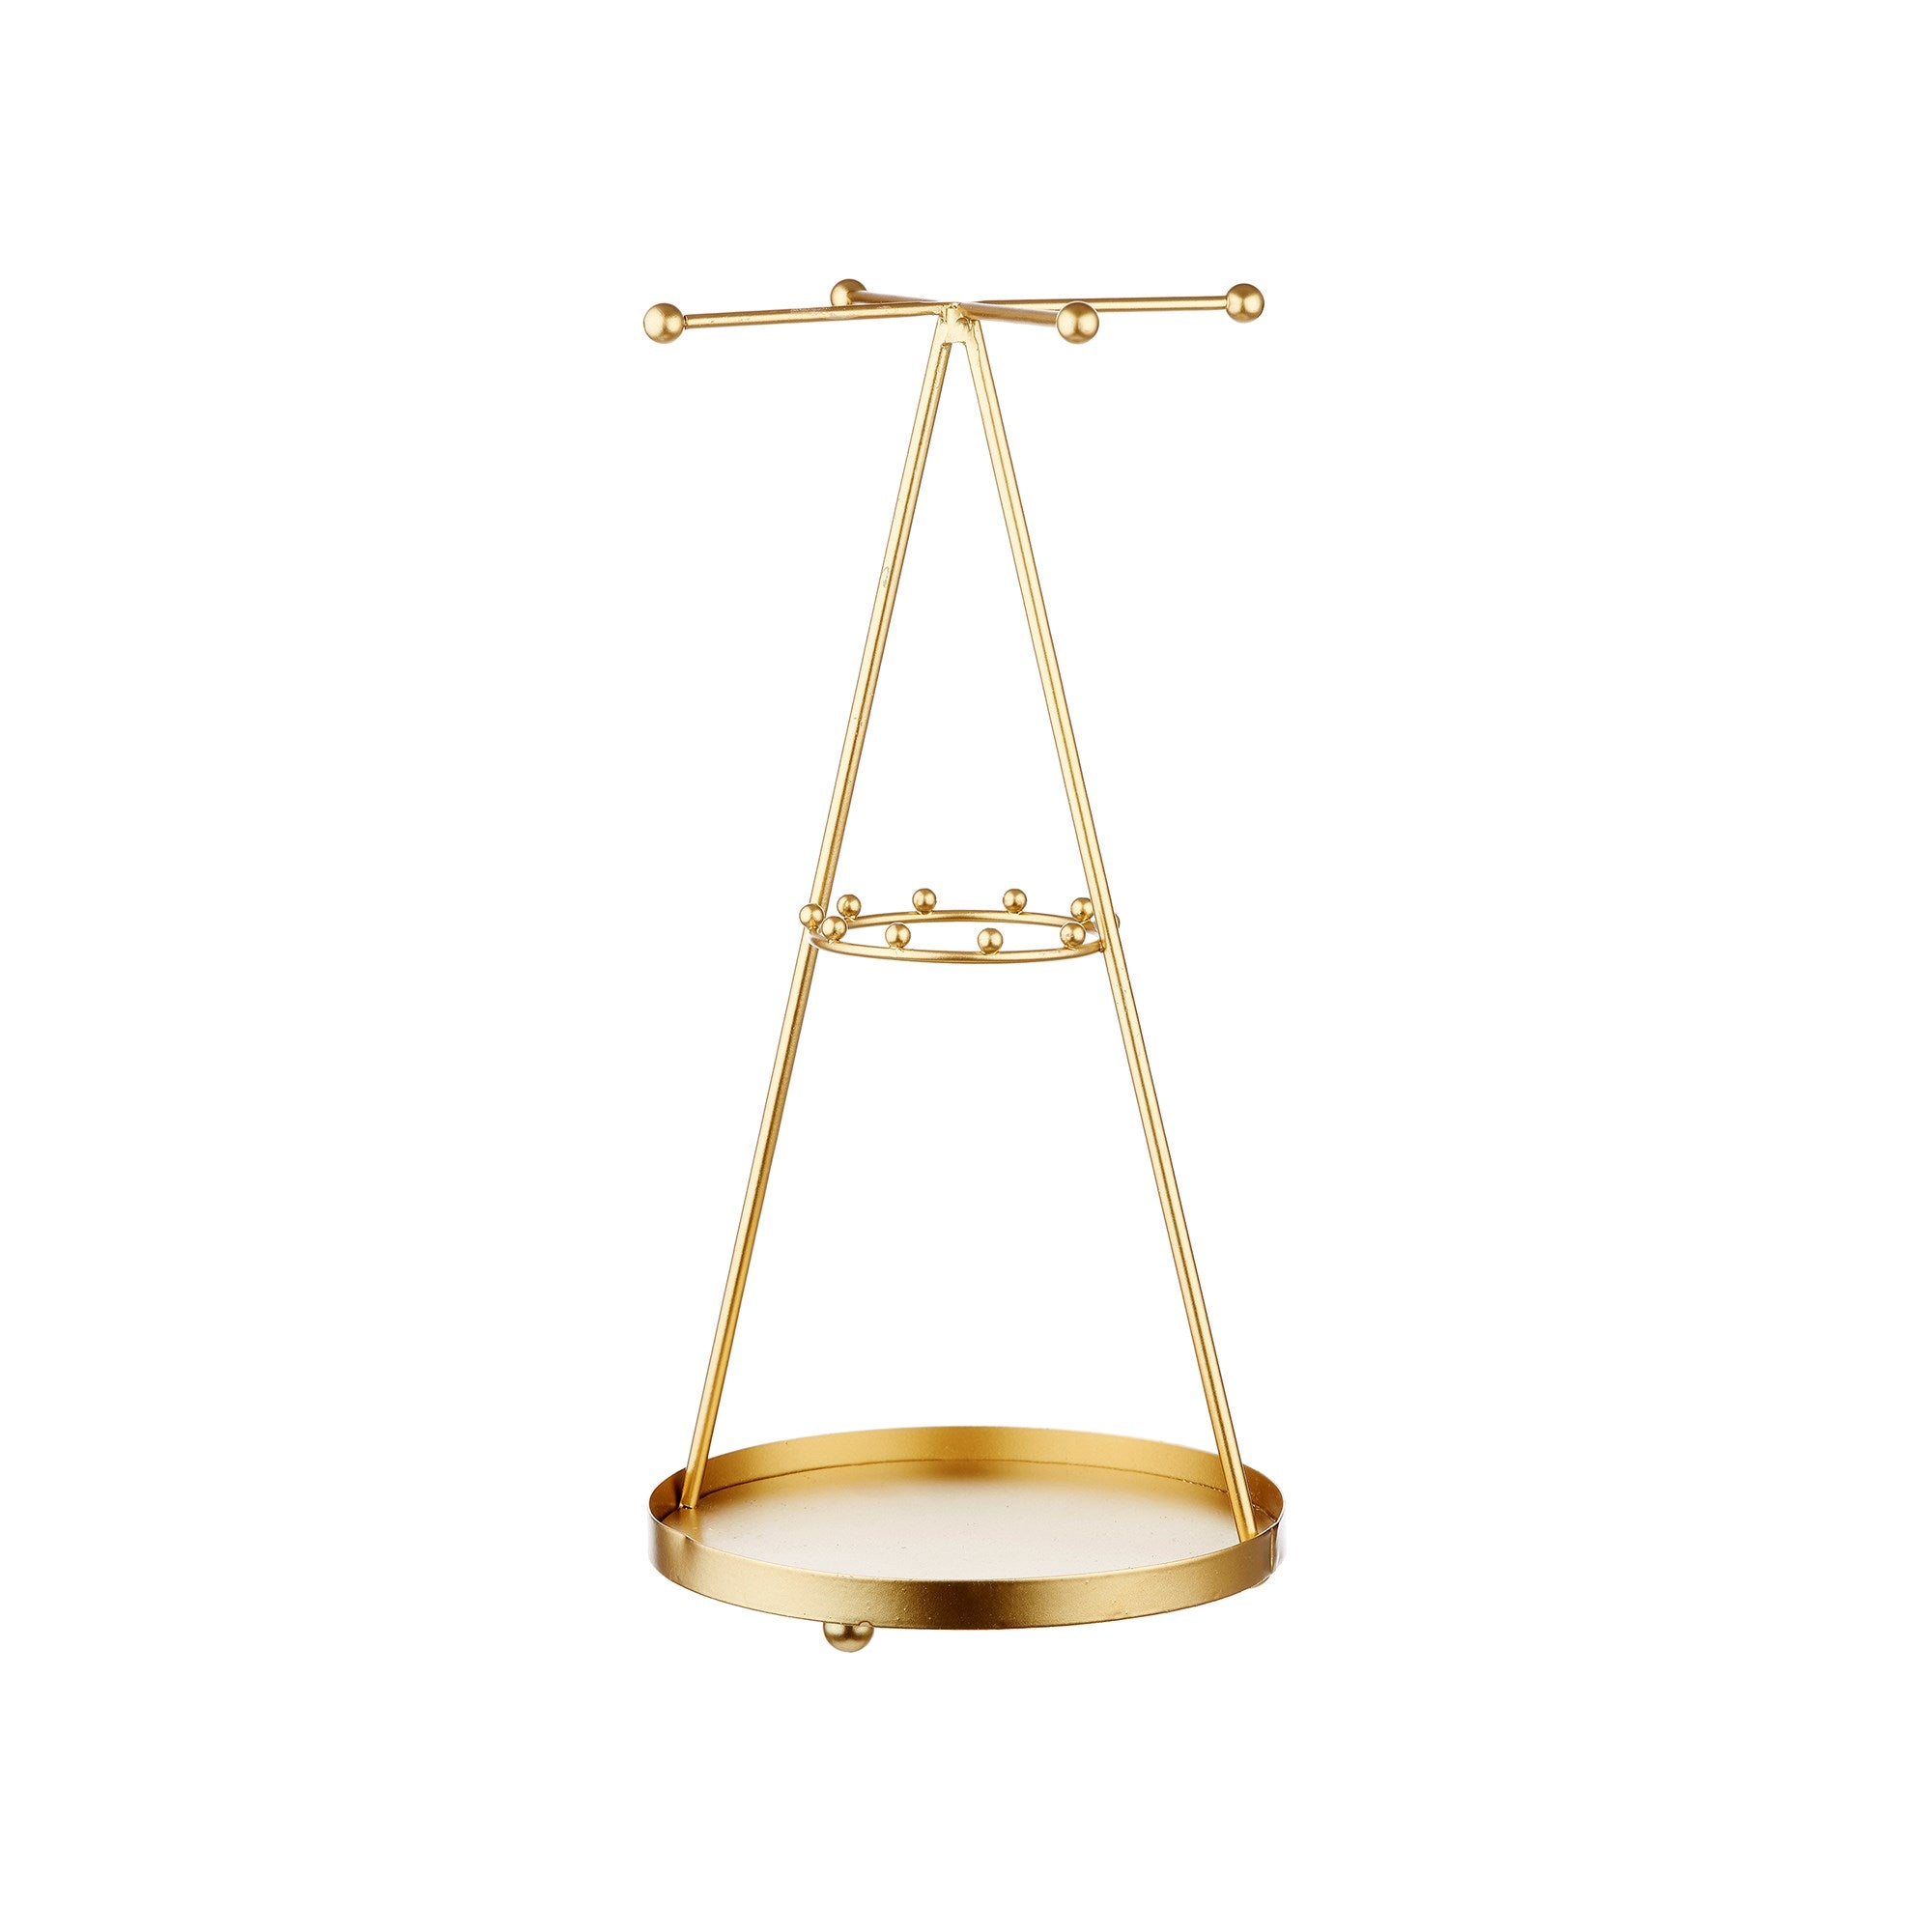 Golden Pyramid Jewellery Stand